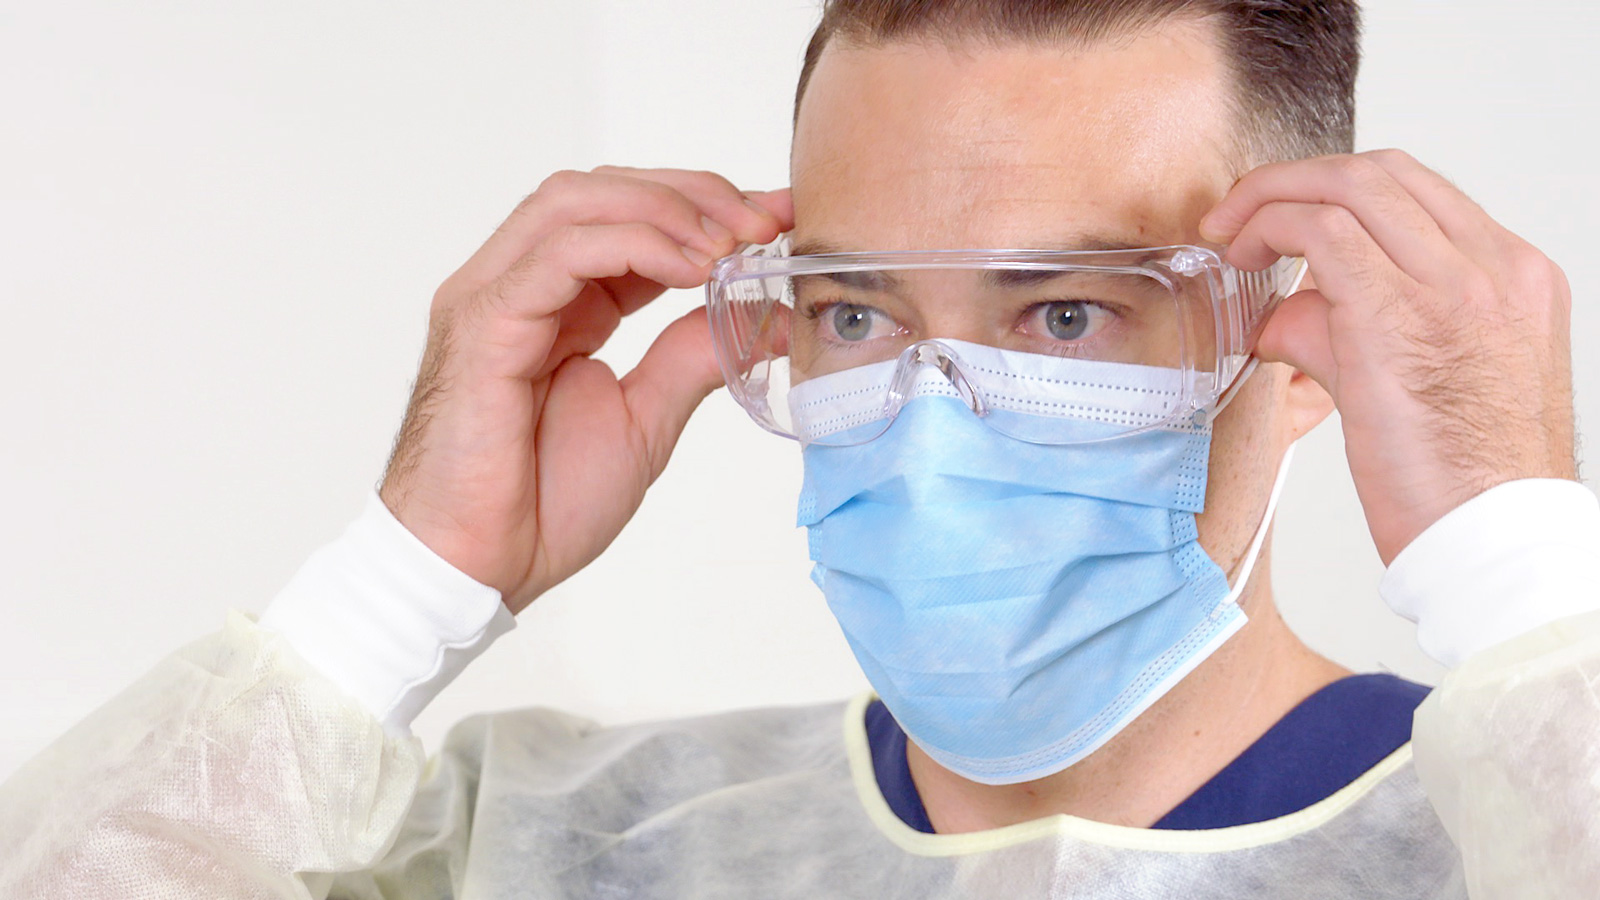 A man in personal protective equipment adjusts his safety glasses